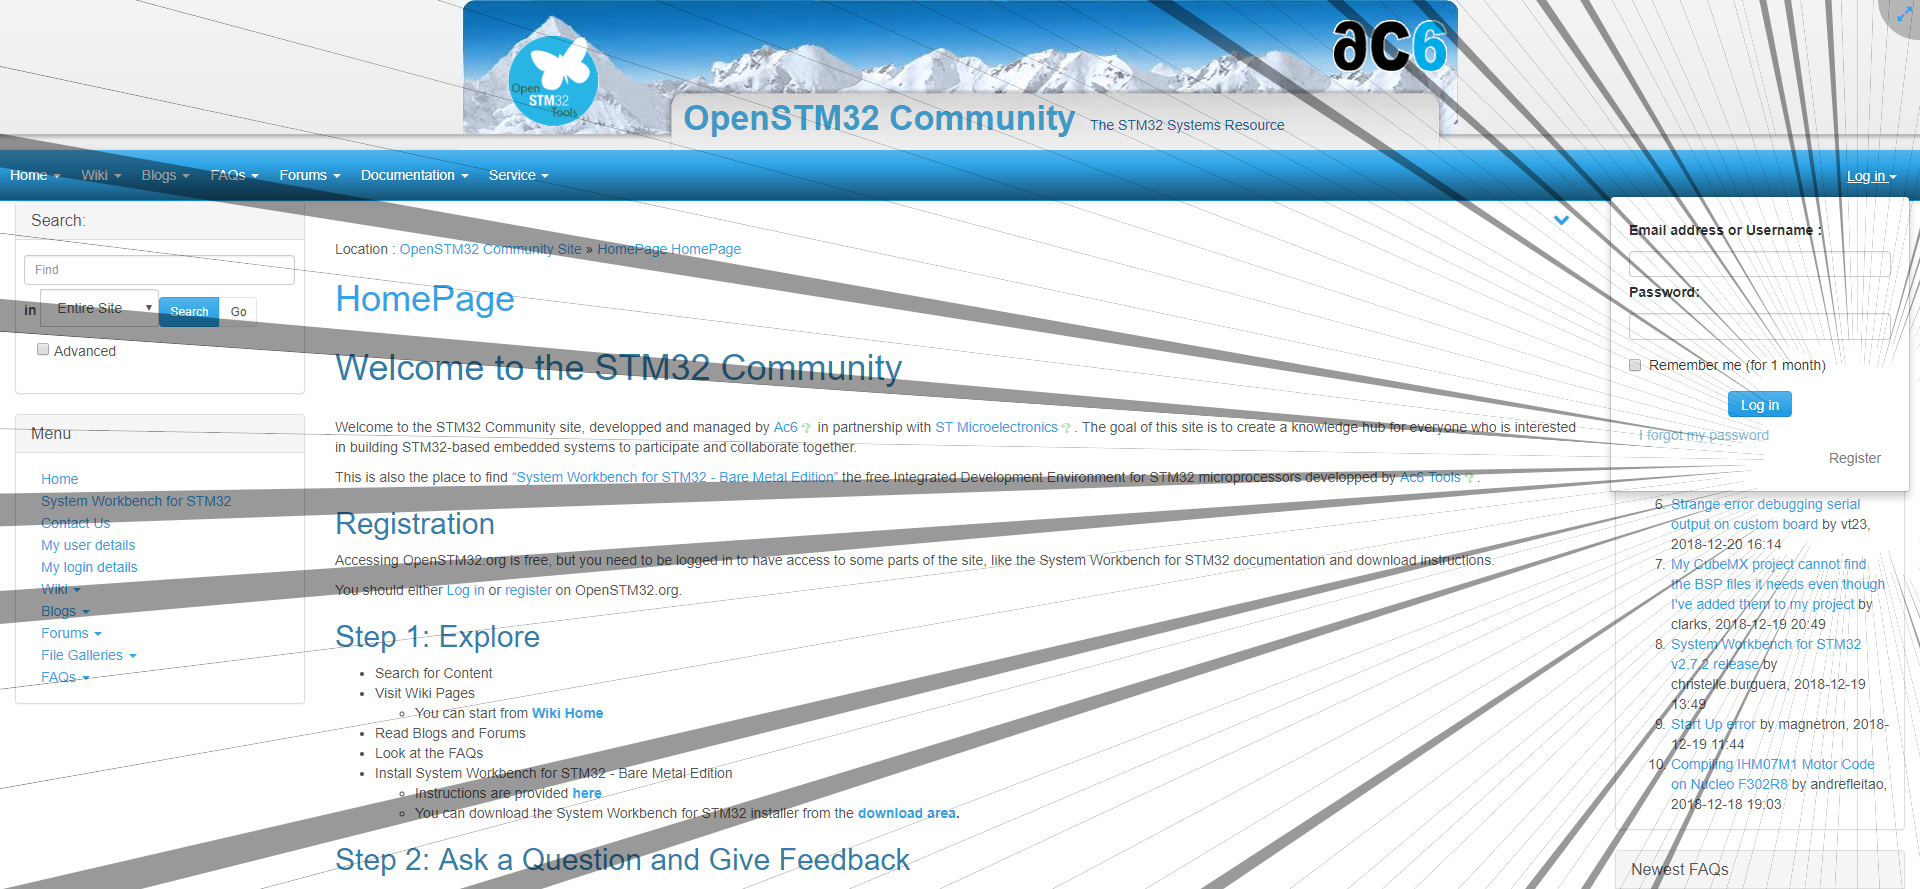 FireShot Capture 7 - OpenSTM32 Community Site I HomePage - http___www.openstm32.org_HomePage-min (1).png